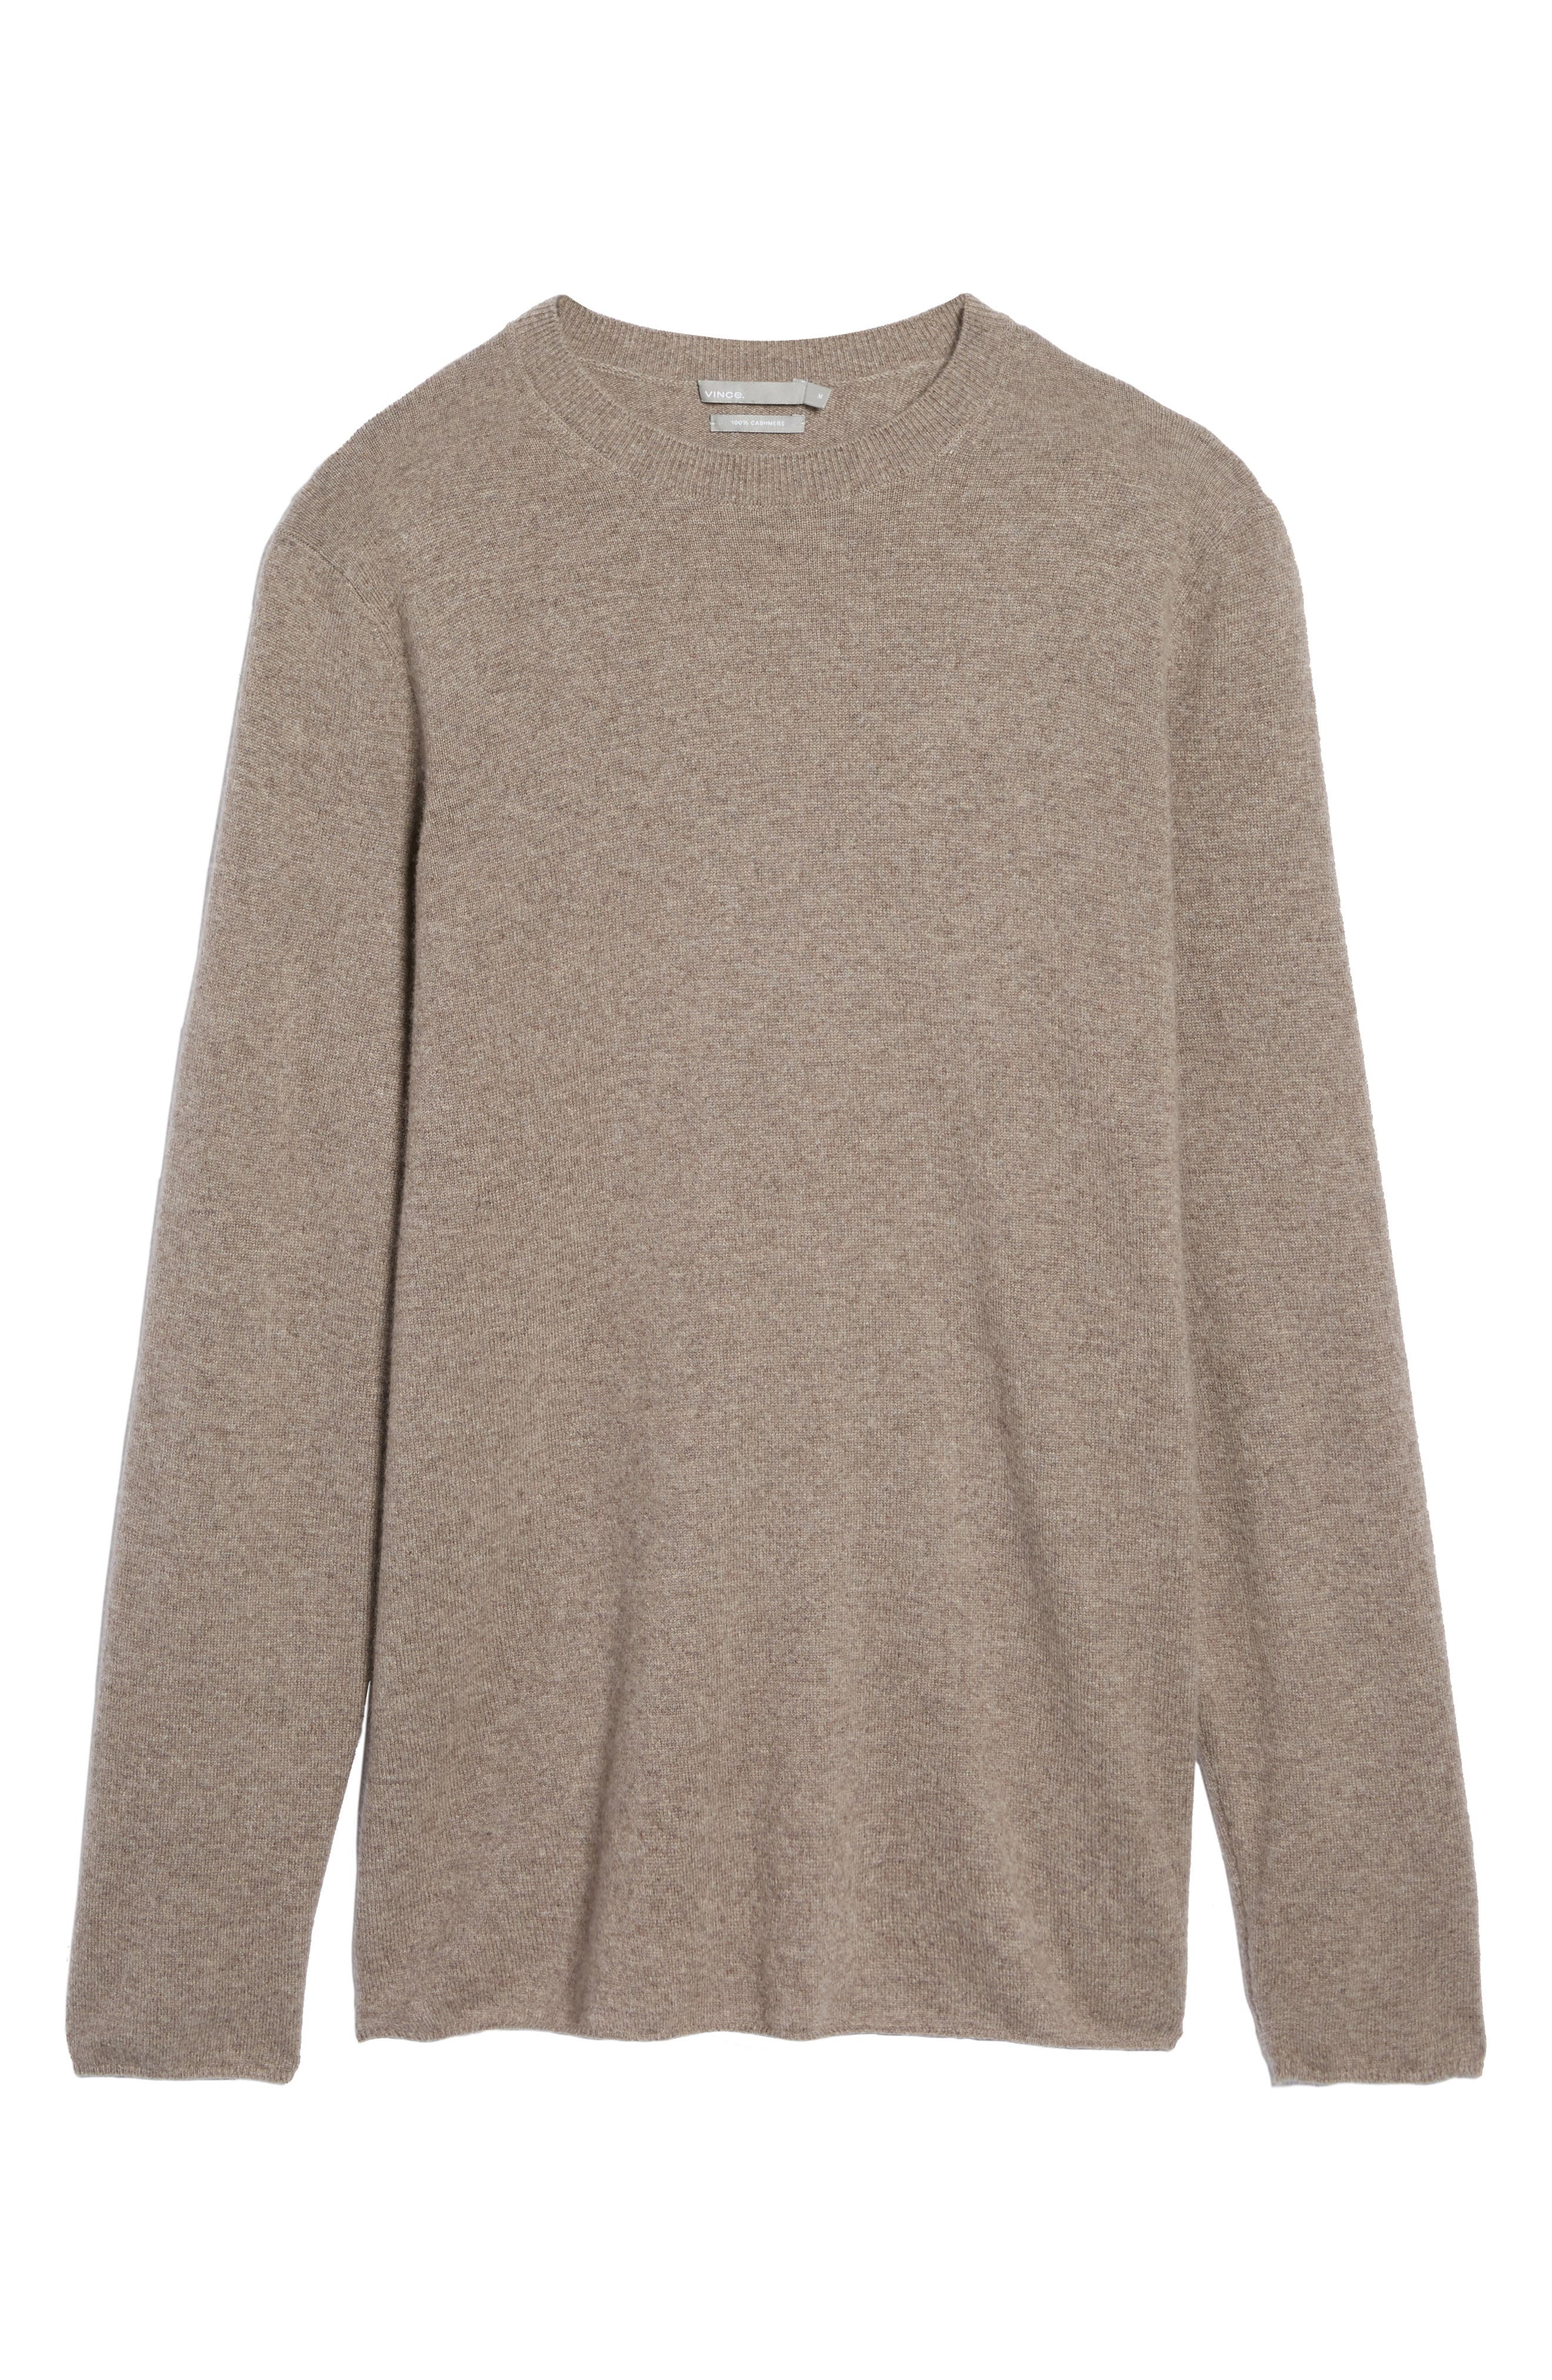 Regular Fit Crewneck Sweater,                             Alternate thumbnail 6, color,                             281